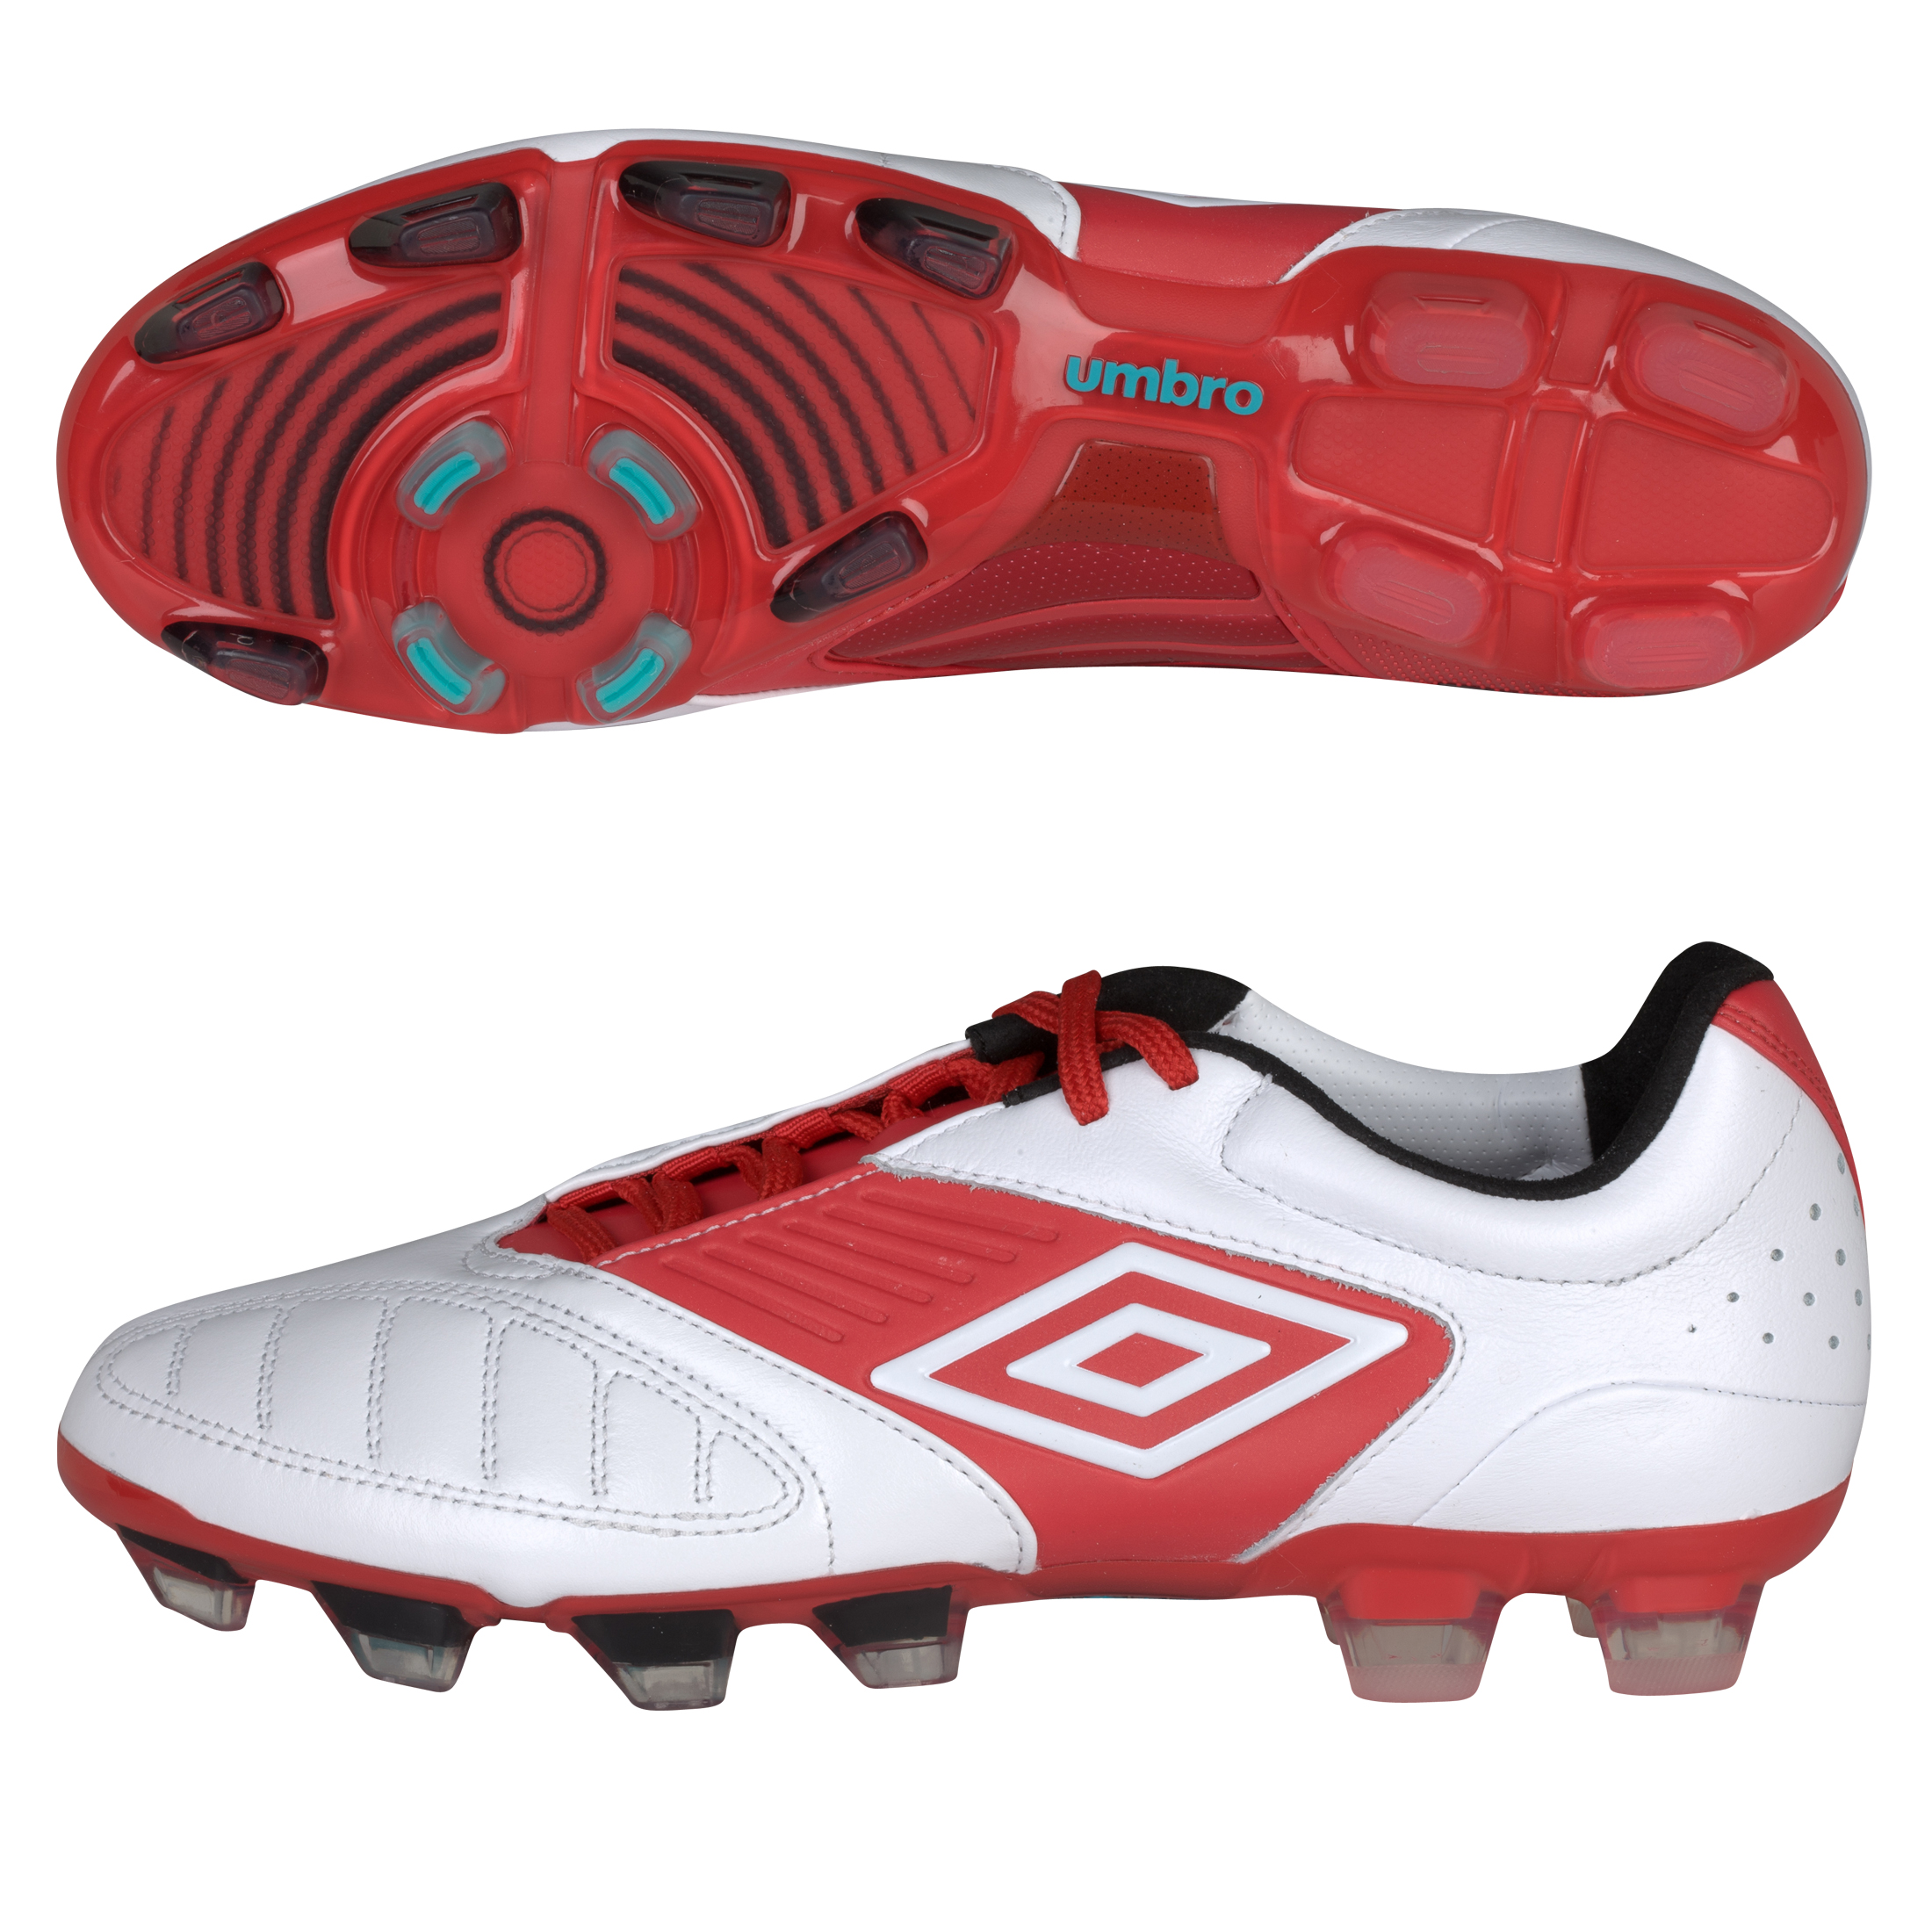 Umbro Geometra Pro Firm Ground Football Boots - White/True Red